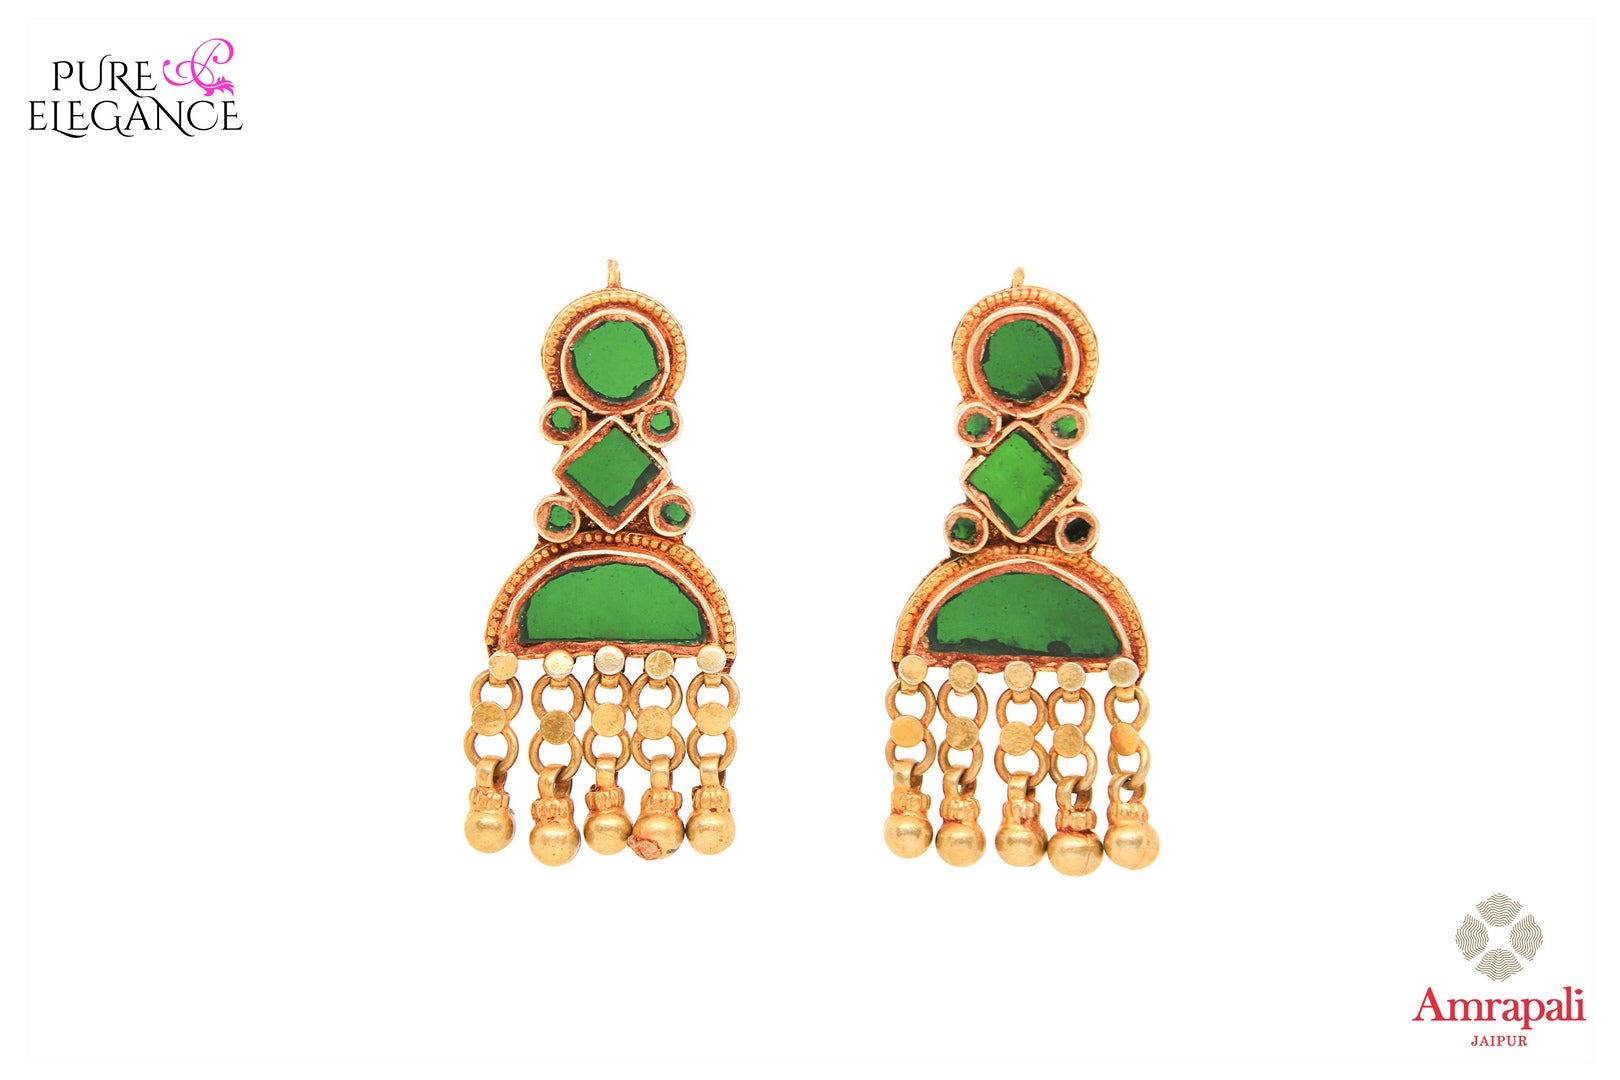 Buy beautiful silver gold plated green glass earrings online in USA from Amrapali. If you are looking for Indian jewellery in USA, then Pure Elegance Indian fashion store is the place for you. A whole range of exquisite silver gold plated earrings, necklaces are waiting for you on our shelves, you can also opt to shop online.-front view